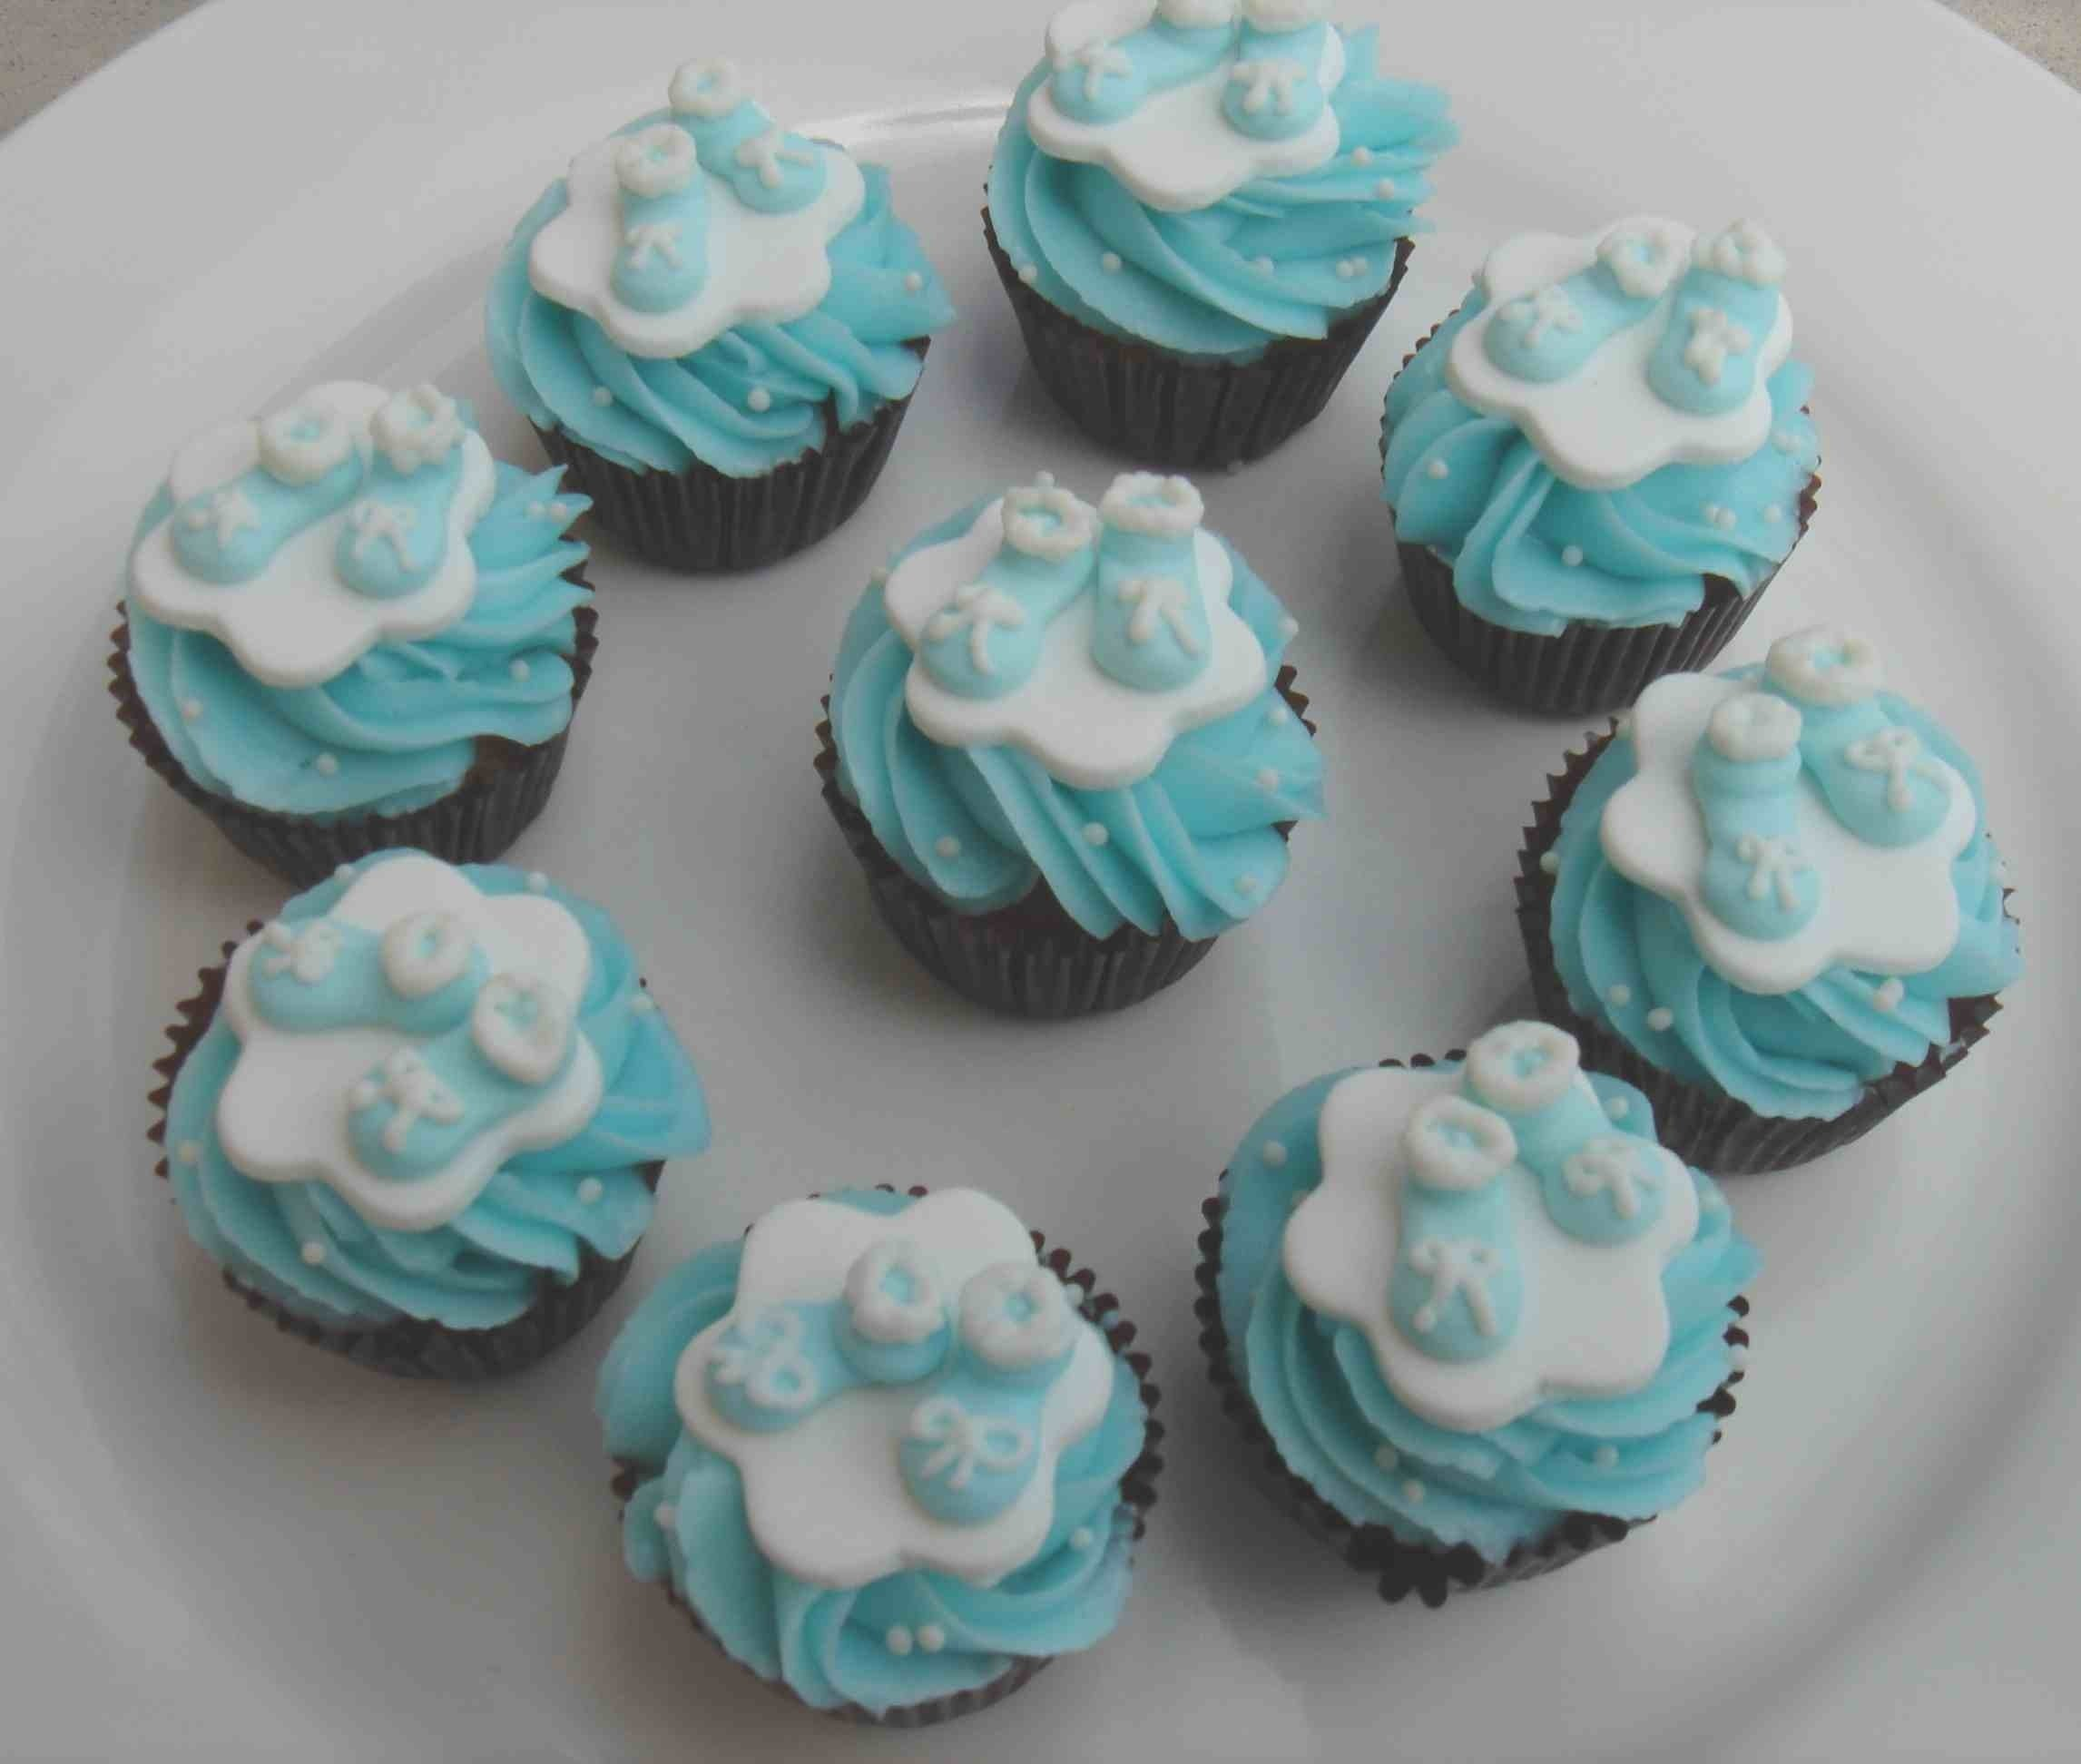 10 Trendy Baby Shower Cupcake Ideas For A Boy babycupcakes google search cakes and cupcakes pinterest baby 1